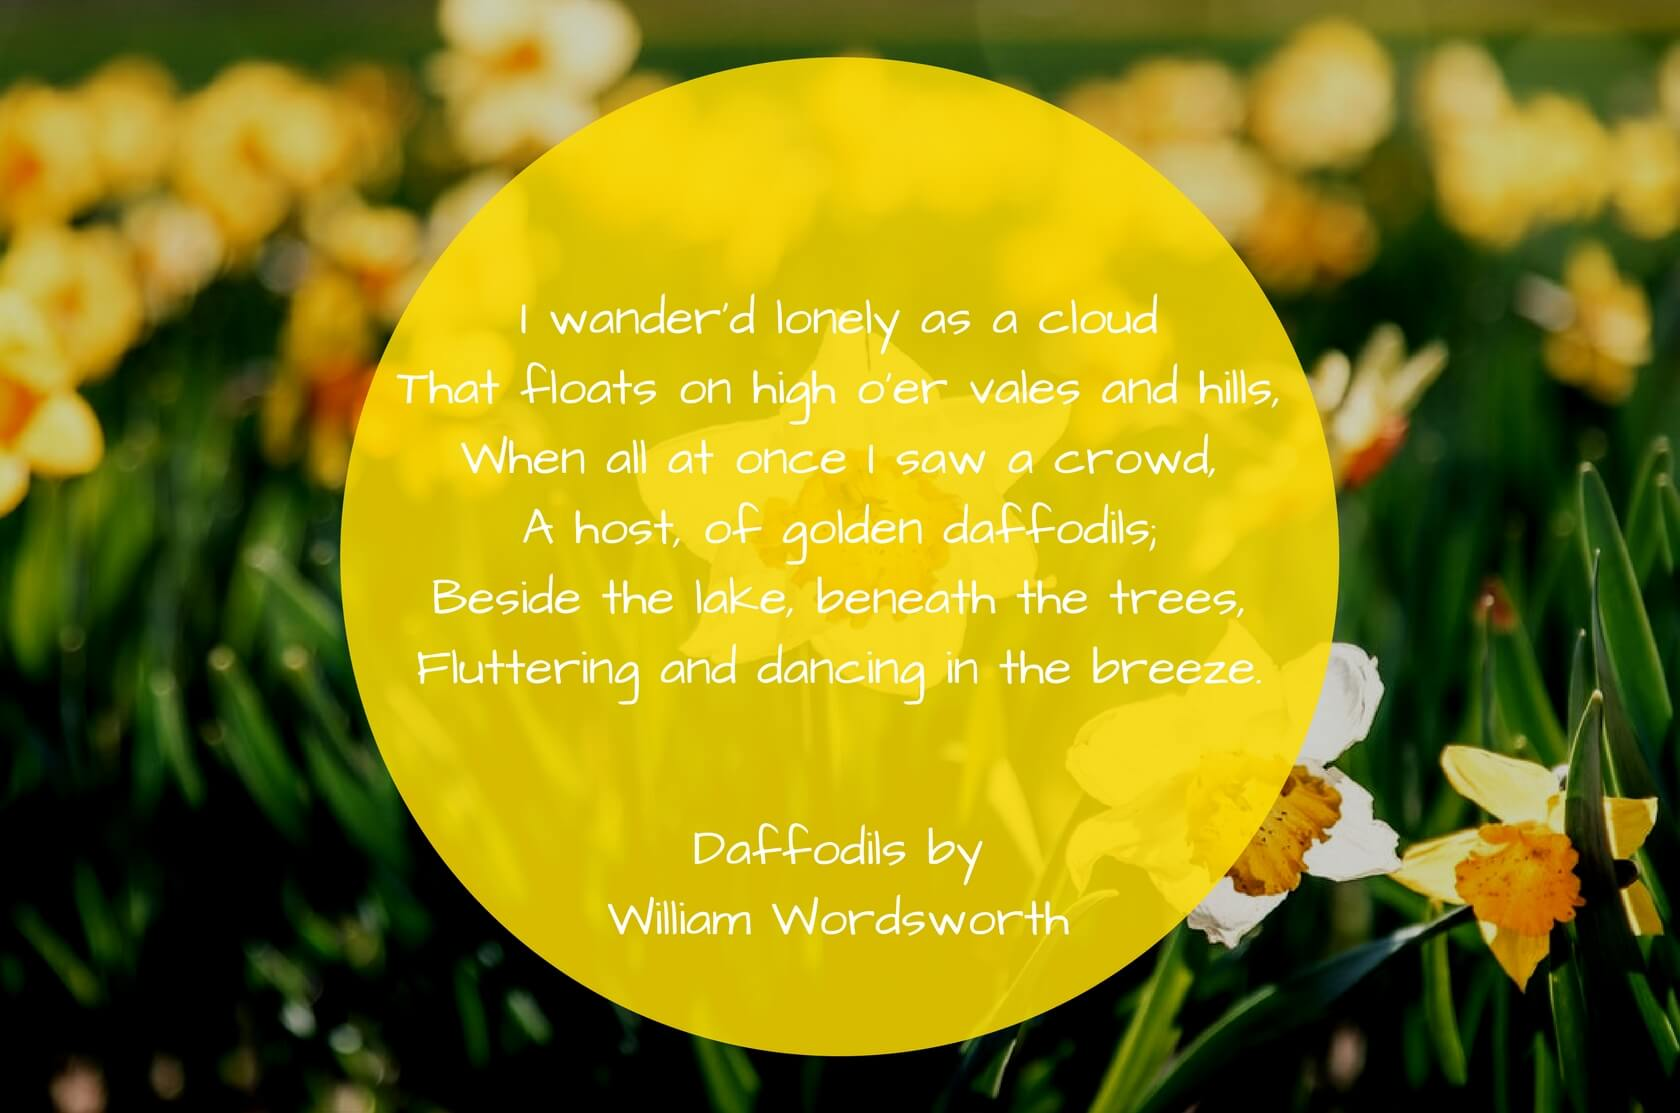 Daffodils-by-William-Wordsworth